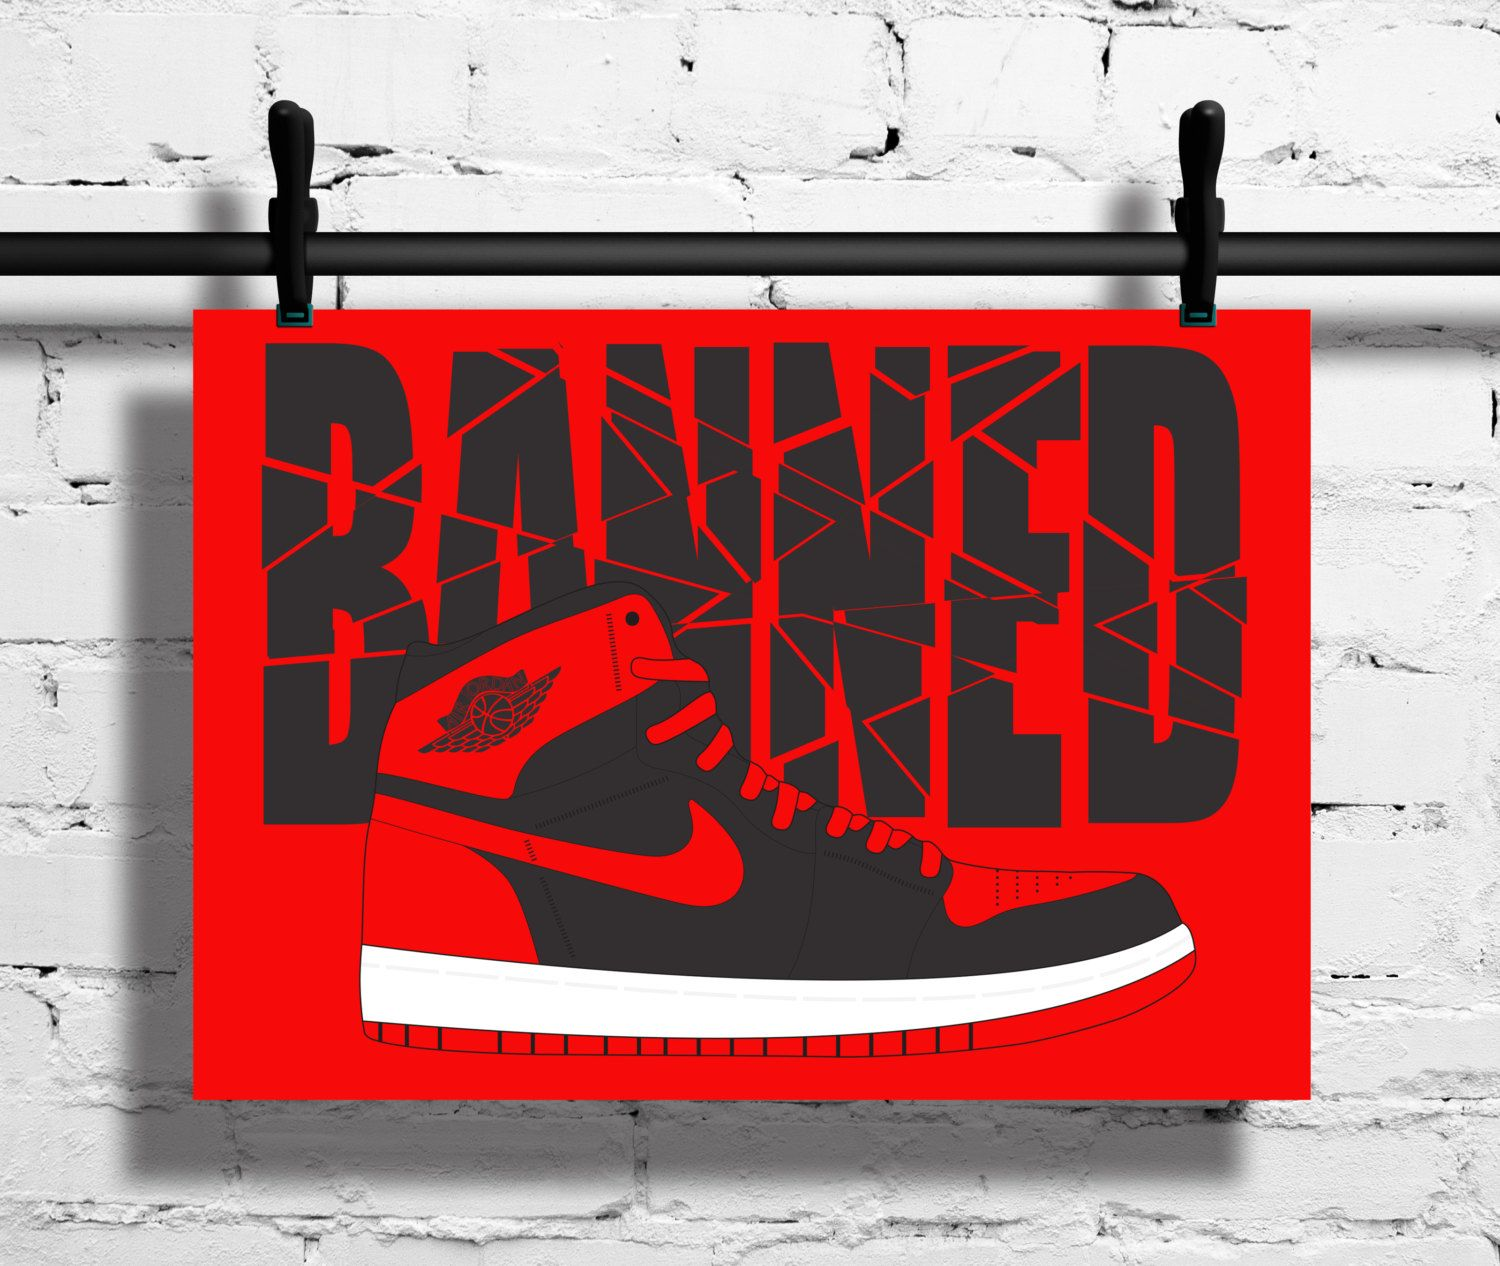 new arrival a6cc0 b7210 Nike Air Jordan 1 Bred Poster – 1985 – Sneaker Print – A4 - A3 – Trainer –  Black – Red – Banned Word – Art – Sneaker - Basketball - Sport by ...